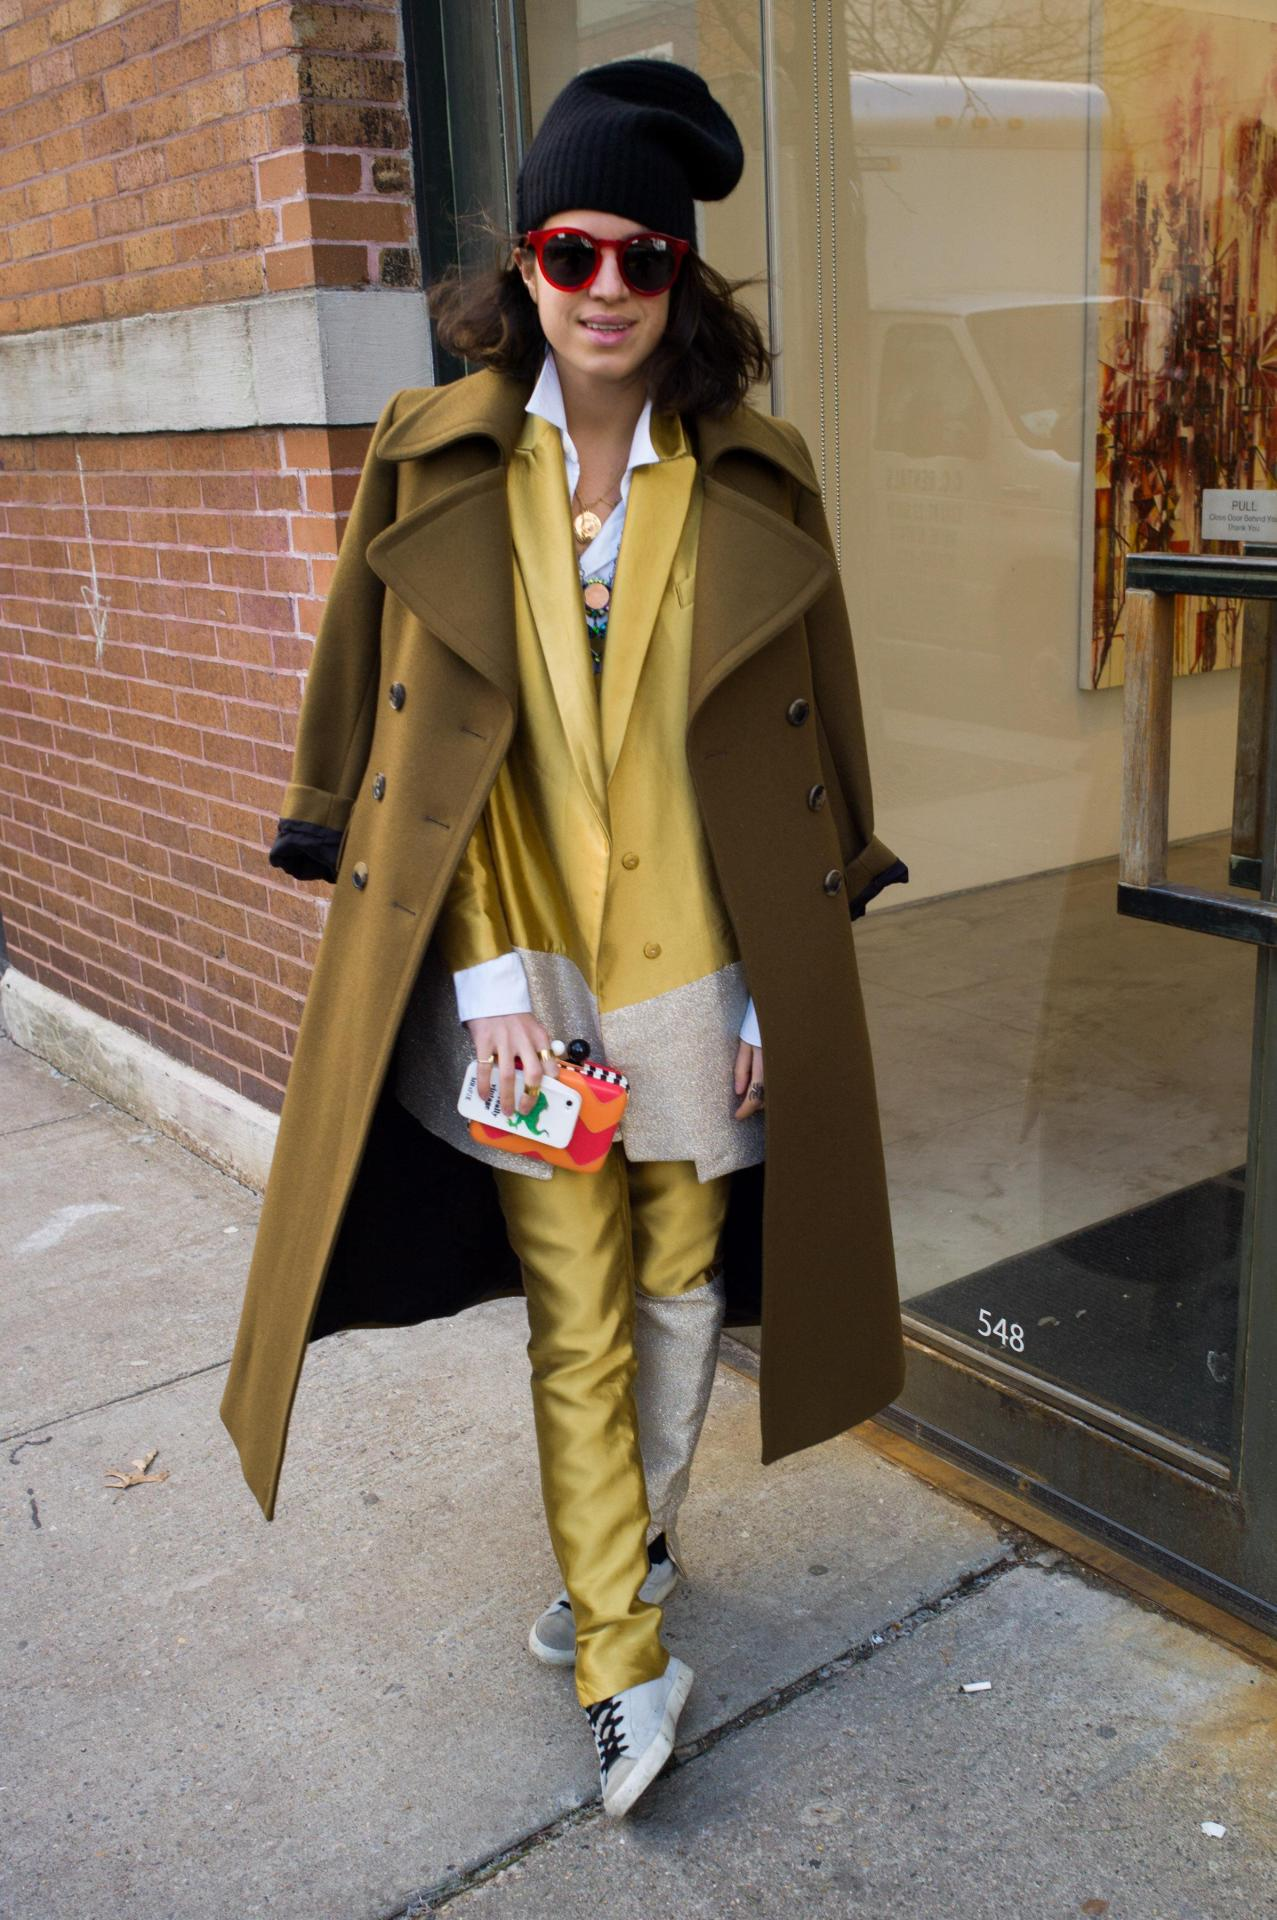 "Leandra Medine vs Suzy Menkes Here's Leandra Medine (aka the Man Repeller) rocking her golden mustard suit at the Rodarte Fall 2013 show. Her closing essay on Fashion Week (""Blog is a Dirty Word"") presented a very articulate counterpoint to Suzy Menkes' T Magazine piece, ""The Circus of Fashion"". Suzy's piece received 42 comments whereas Leandra received a whopping 132, but who's keeping count? The debate about the new army of bloggers and their validity is a powerful one, so give both articles a chance. Lots of truth is expressed in each.  (Photo: Jesse Lirola/BFAnyc.com. Text by Jauretsi)"